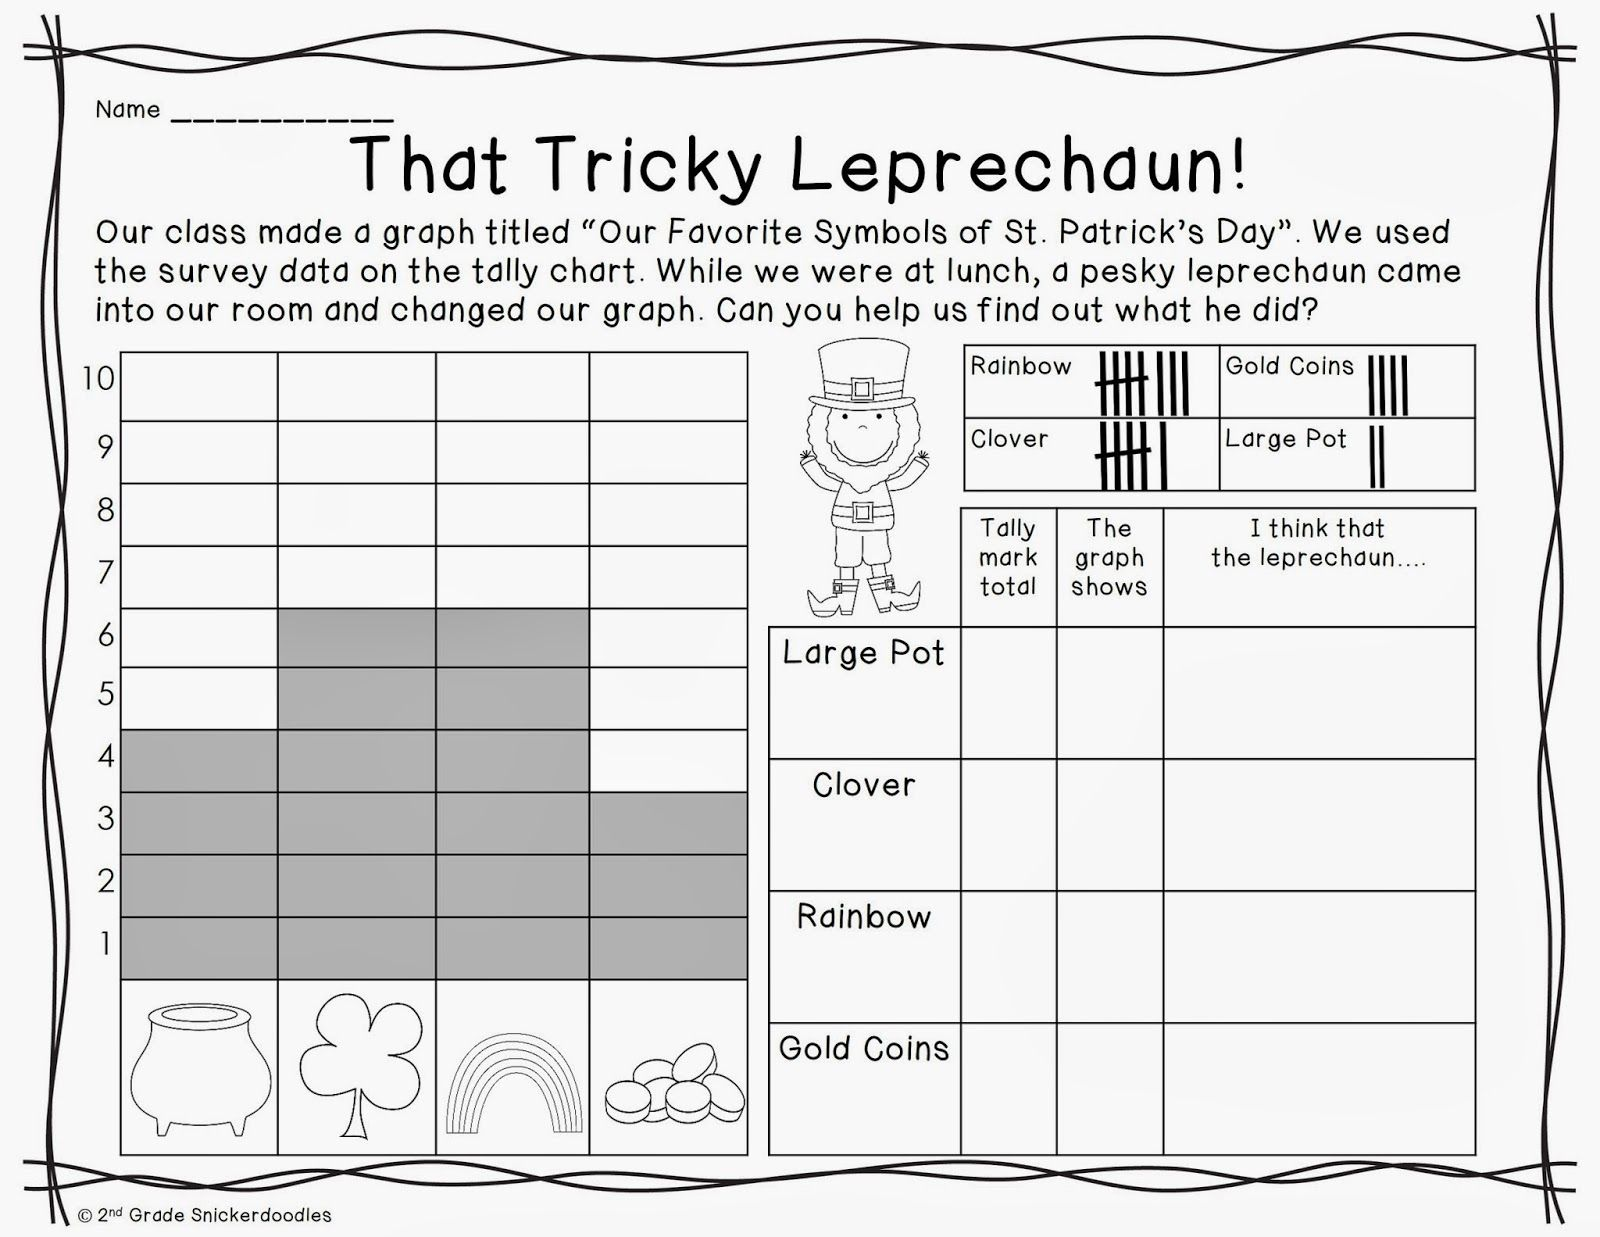 FREE graphing activities by 2nd Grade Snickerdoodles   Graphing activities [ 1237 x 1600 Pixel ]